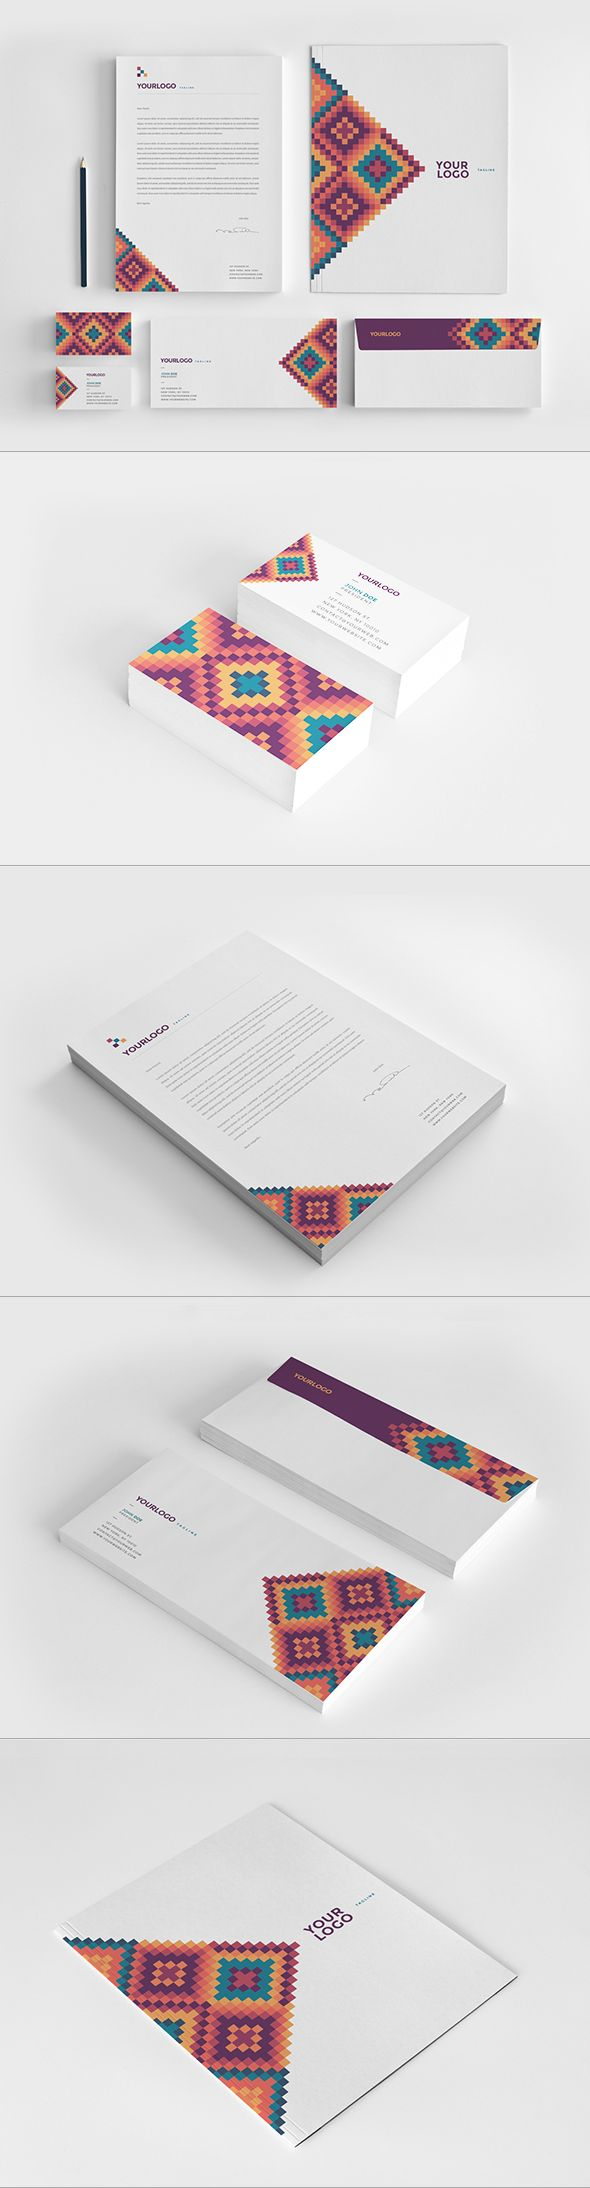 Modern Colorful Pattern Stationery. Download here: http://graphicriver.net/item/modern-colorful-pattern-stationery/12335438?ref=abradesign